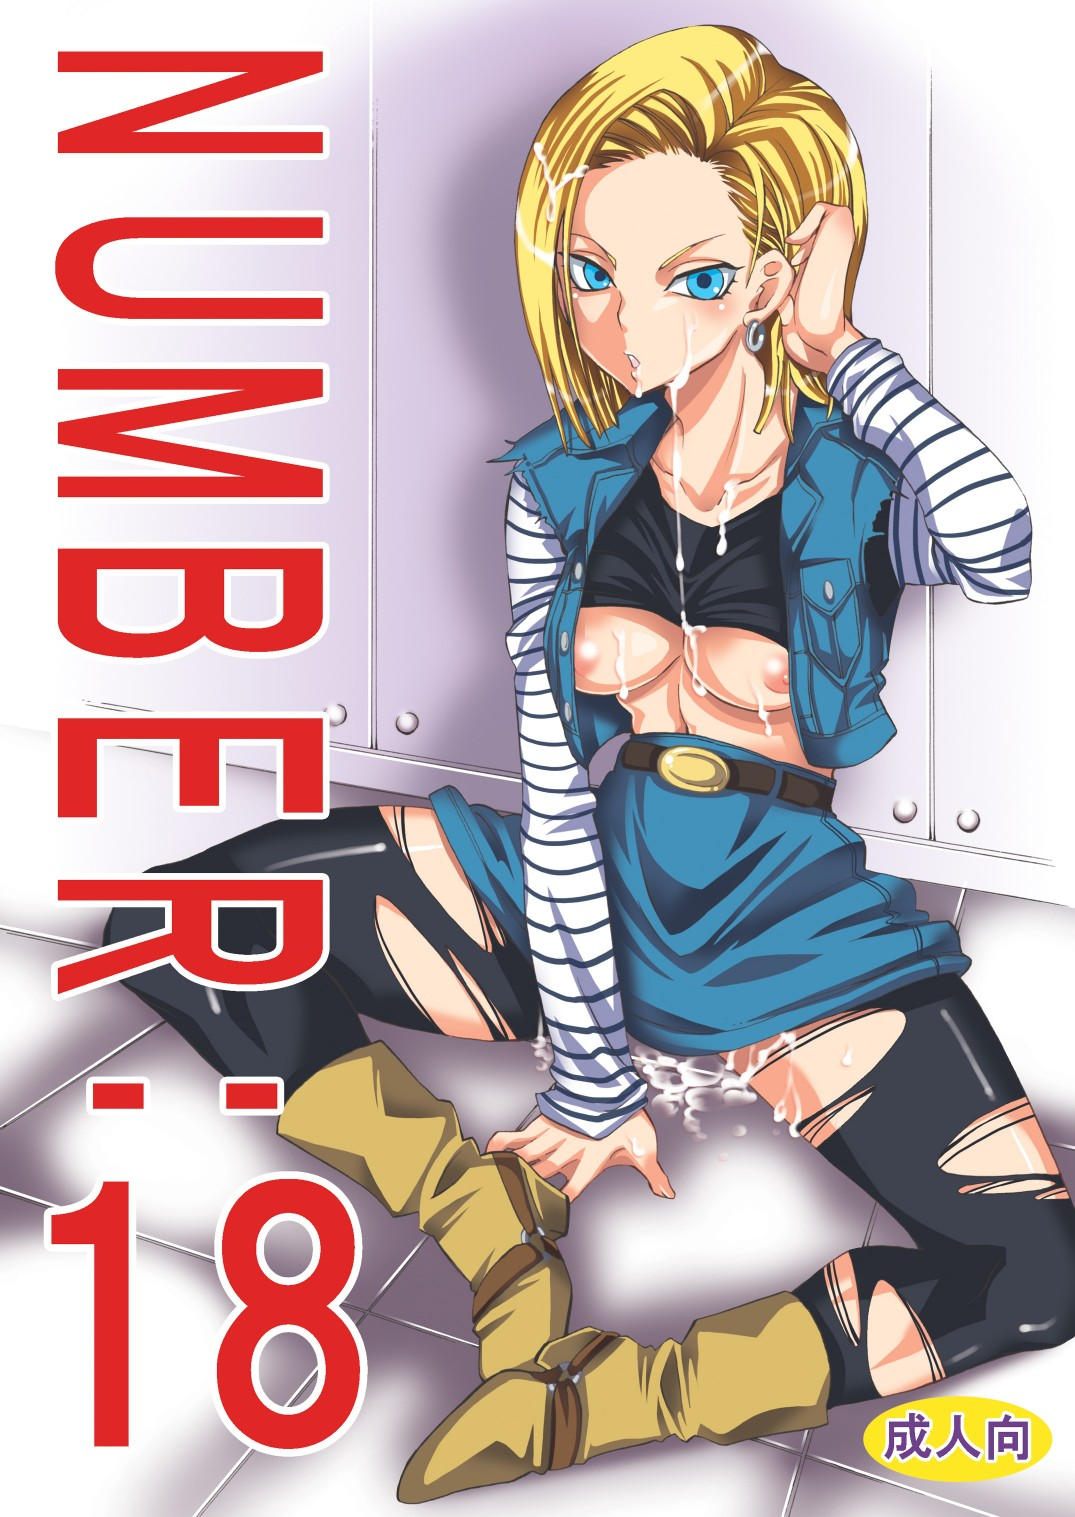 Android 18 Sex Video krillin and android 18 hentai - megapornx